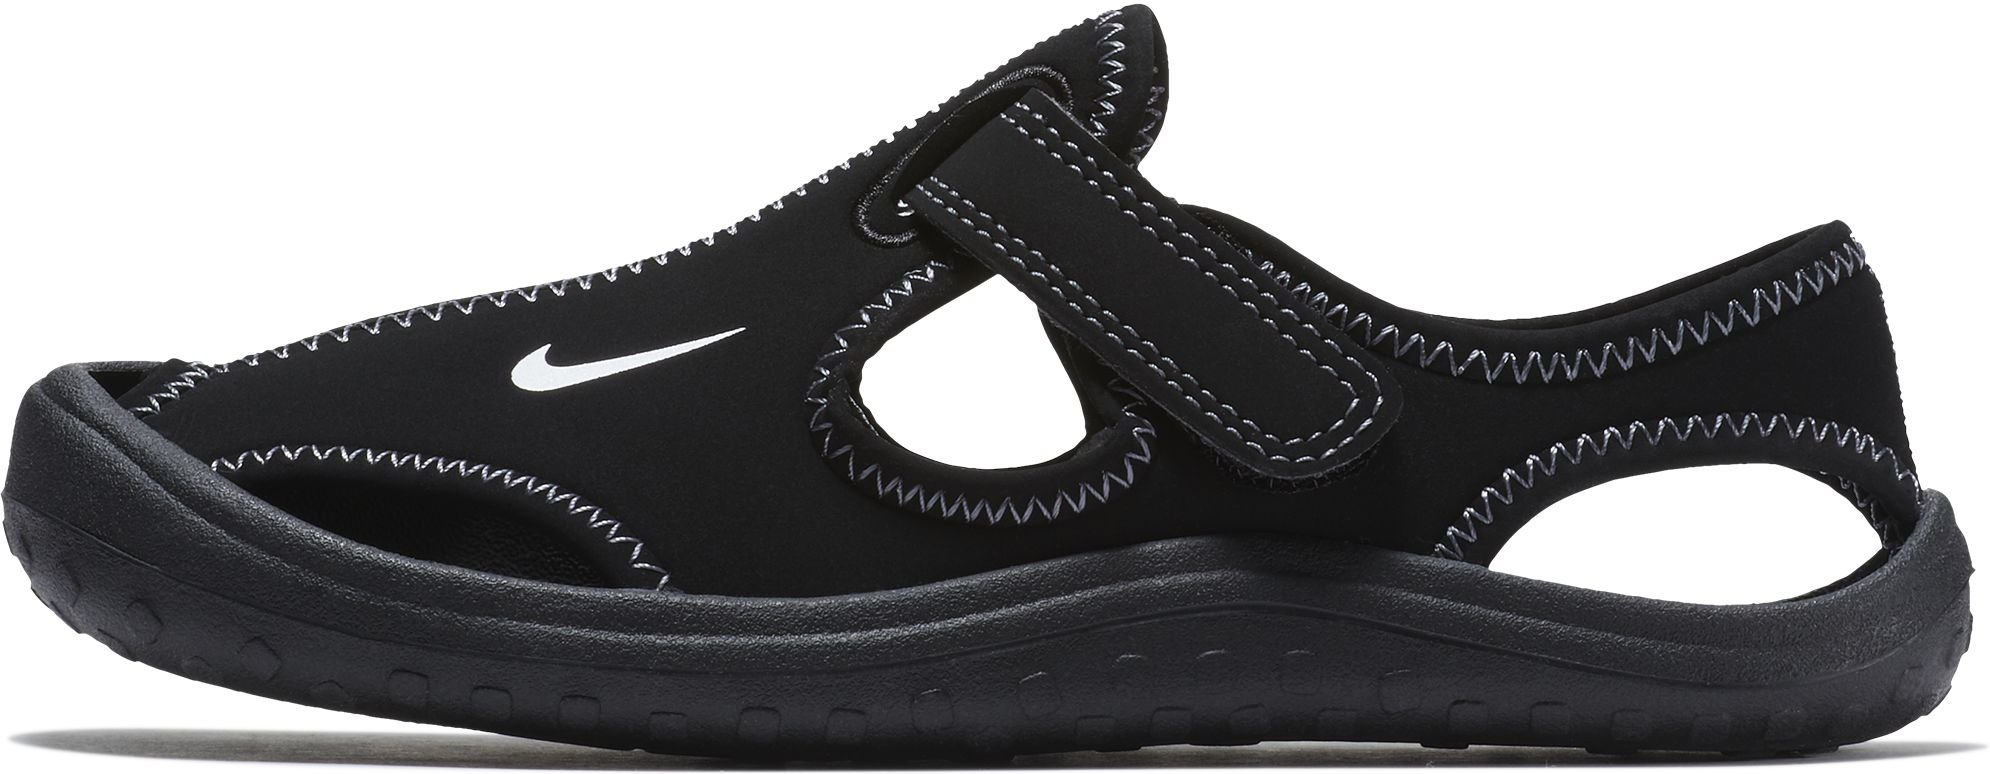 Nike Sunray Protect (PS) Little Kids Shoes Black/White/Dark Grey 903631-001 (3 M US)